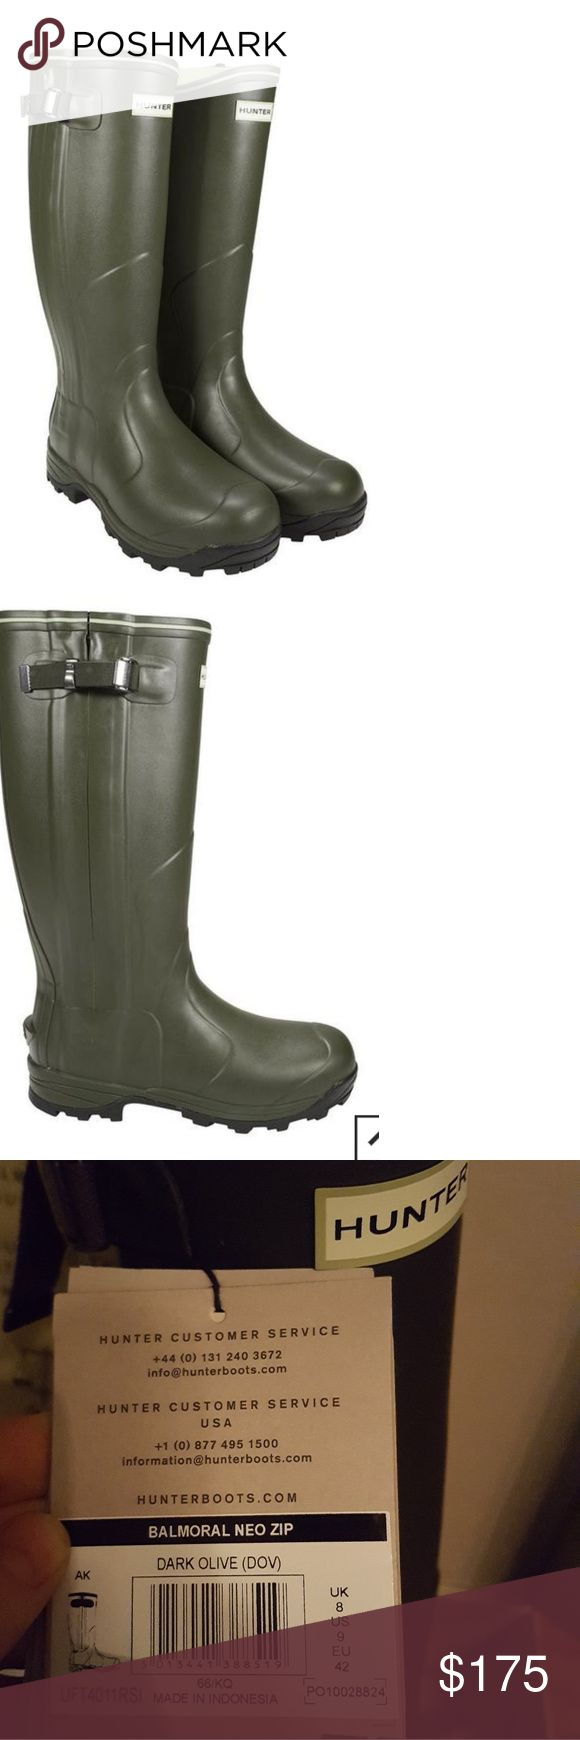 NWT Hunter Balmoral Neo-zipper Rain Boots Hunter Balmoral Neoprene Zip up Rain boots in dark olive, size 9 US 8 UK (see tag) runs a bit large fits more like a 9.5. Brand New With Tags and extra insoles included. Hunter Shoes Winter & Rain Boots